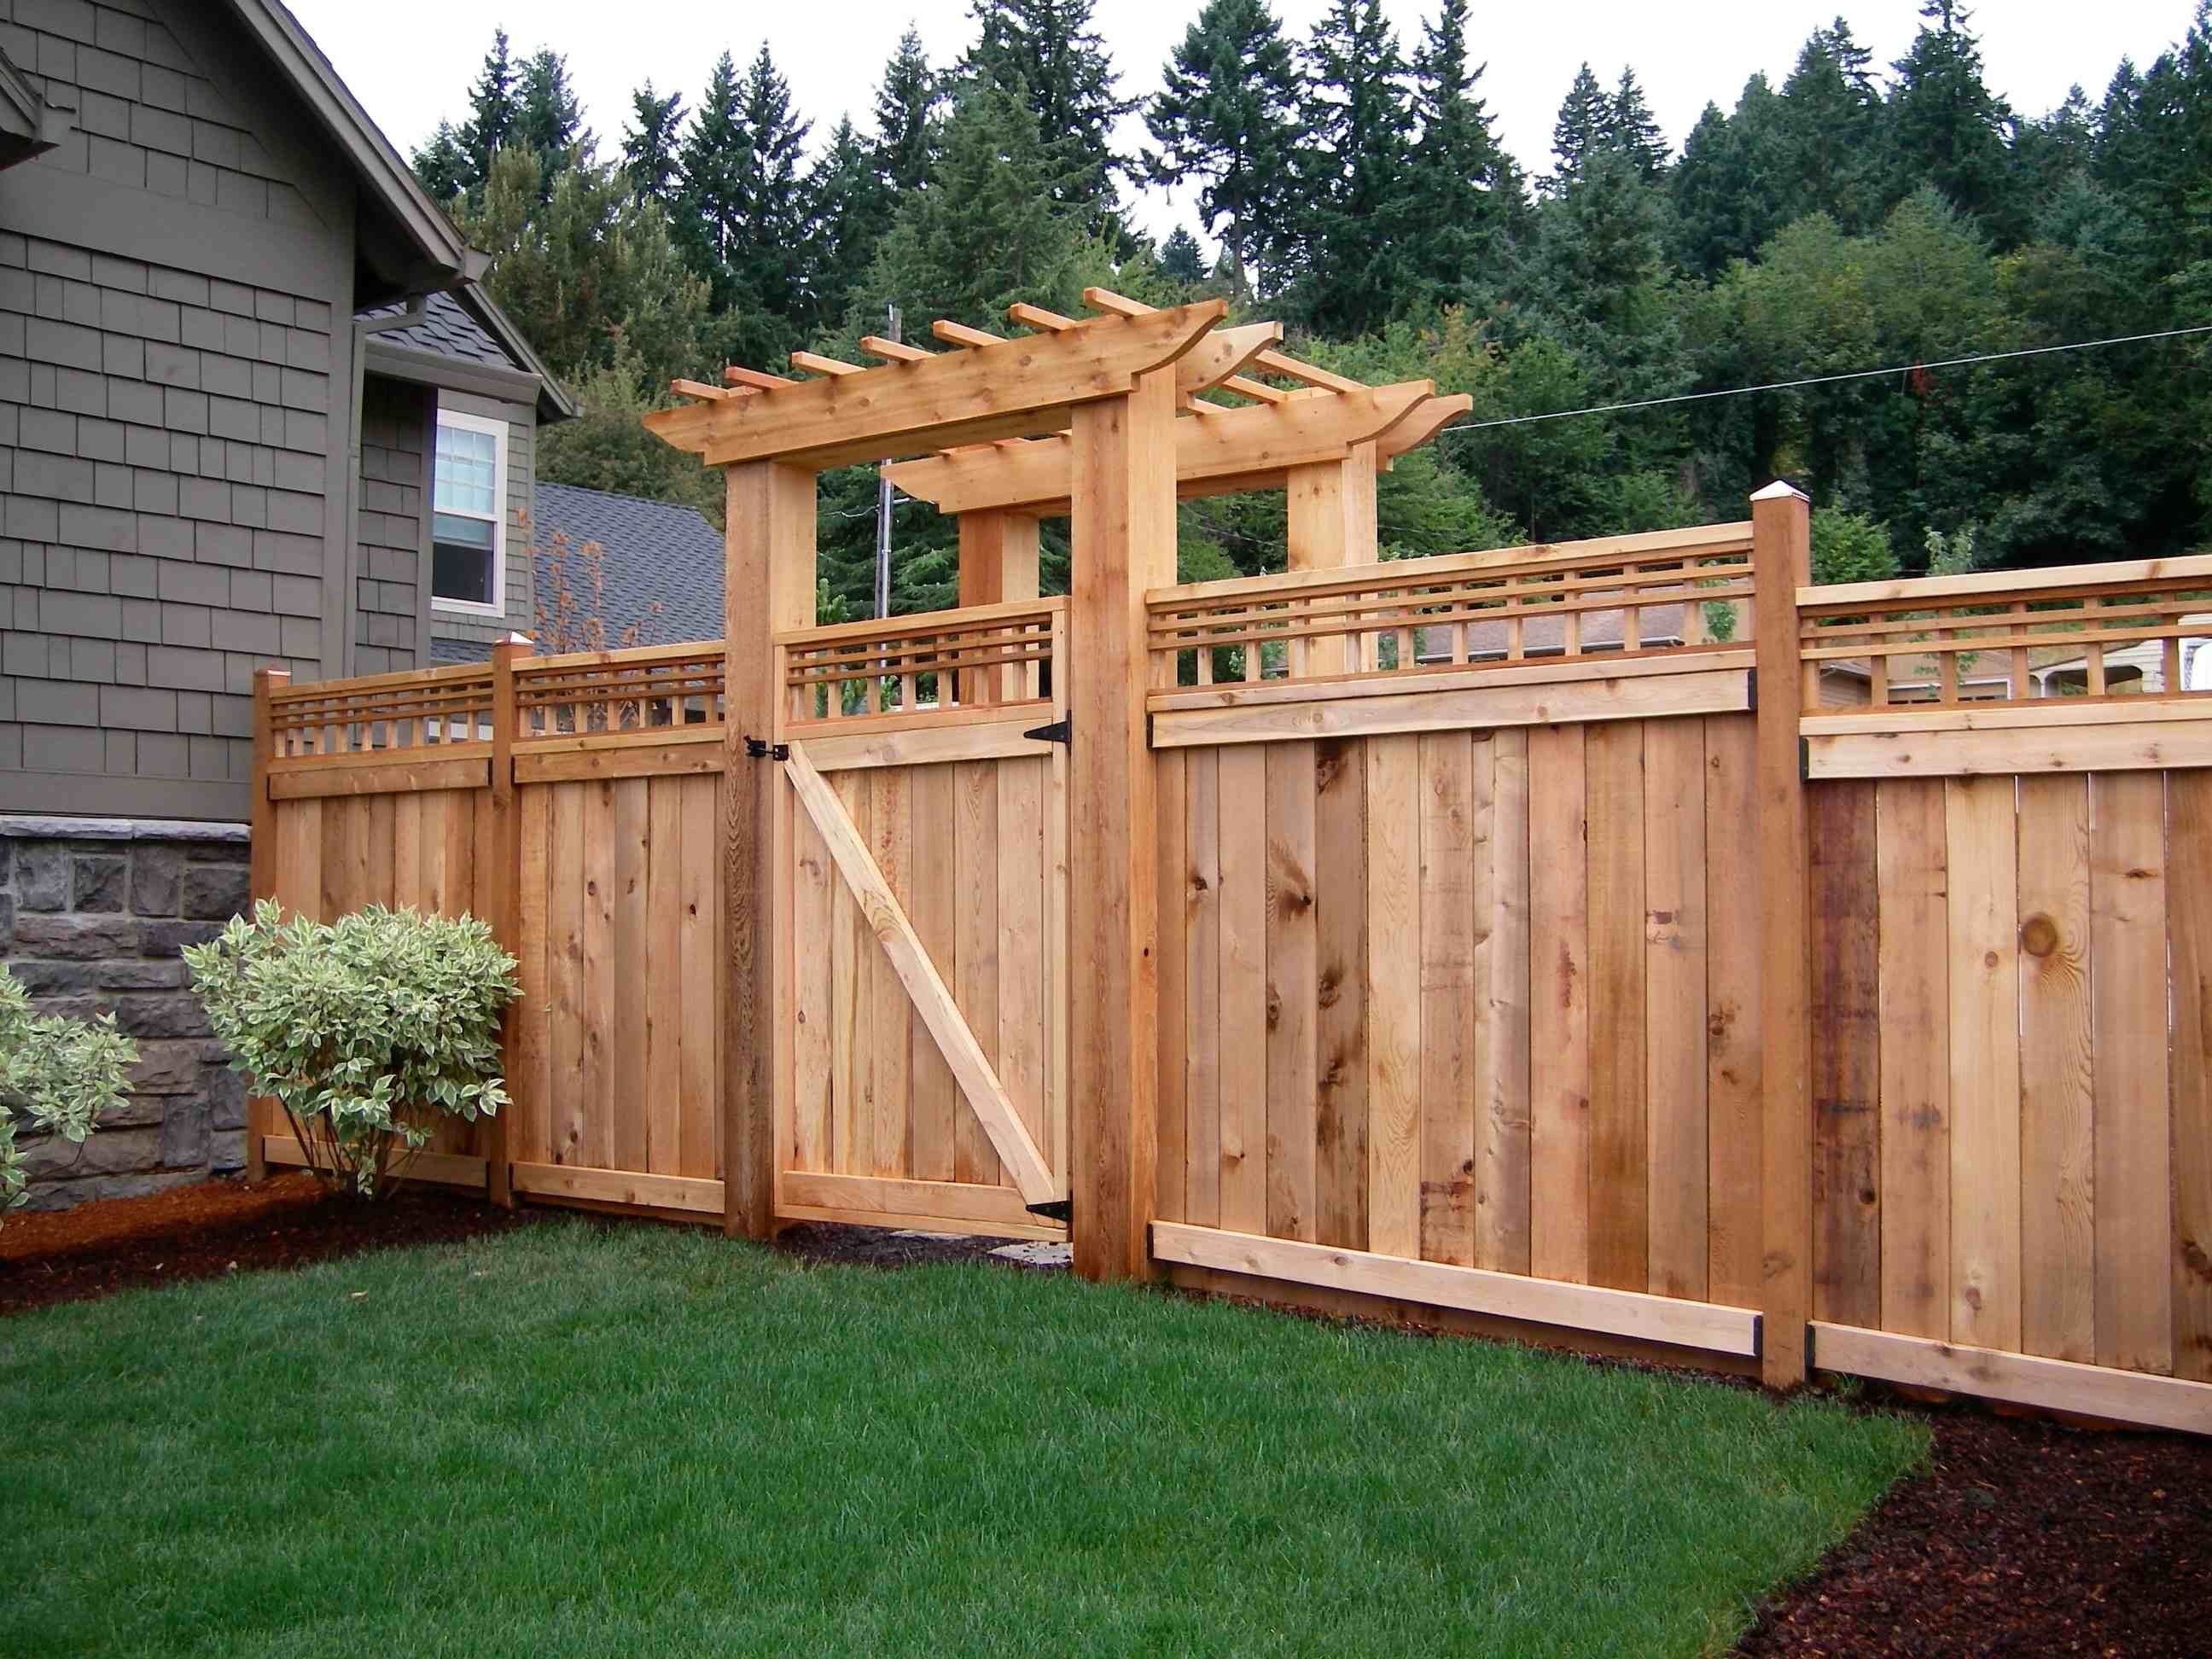 Numerous different thumbnail photos of privacy wood fence designs by ...